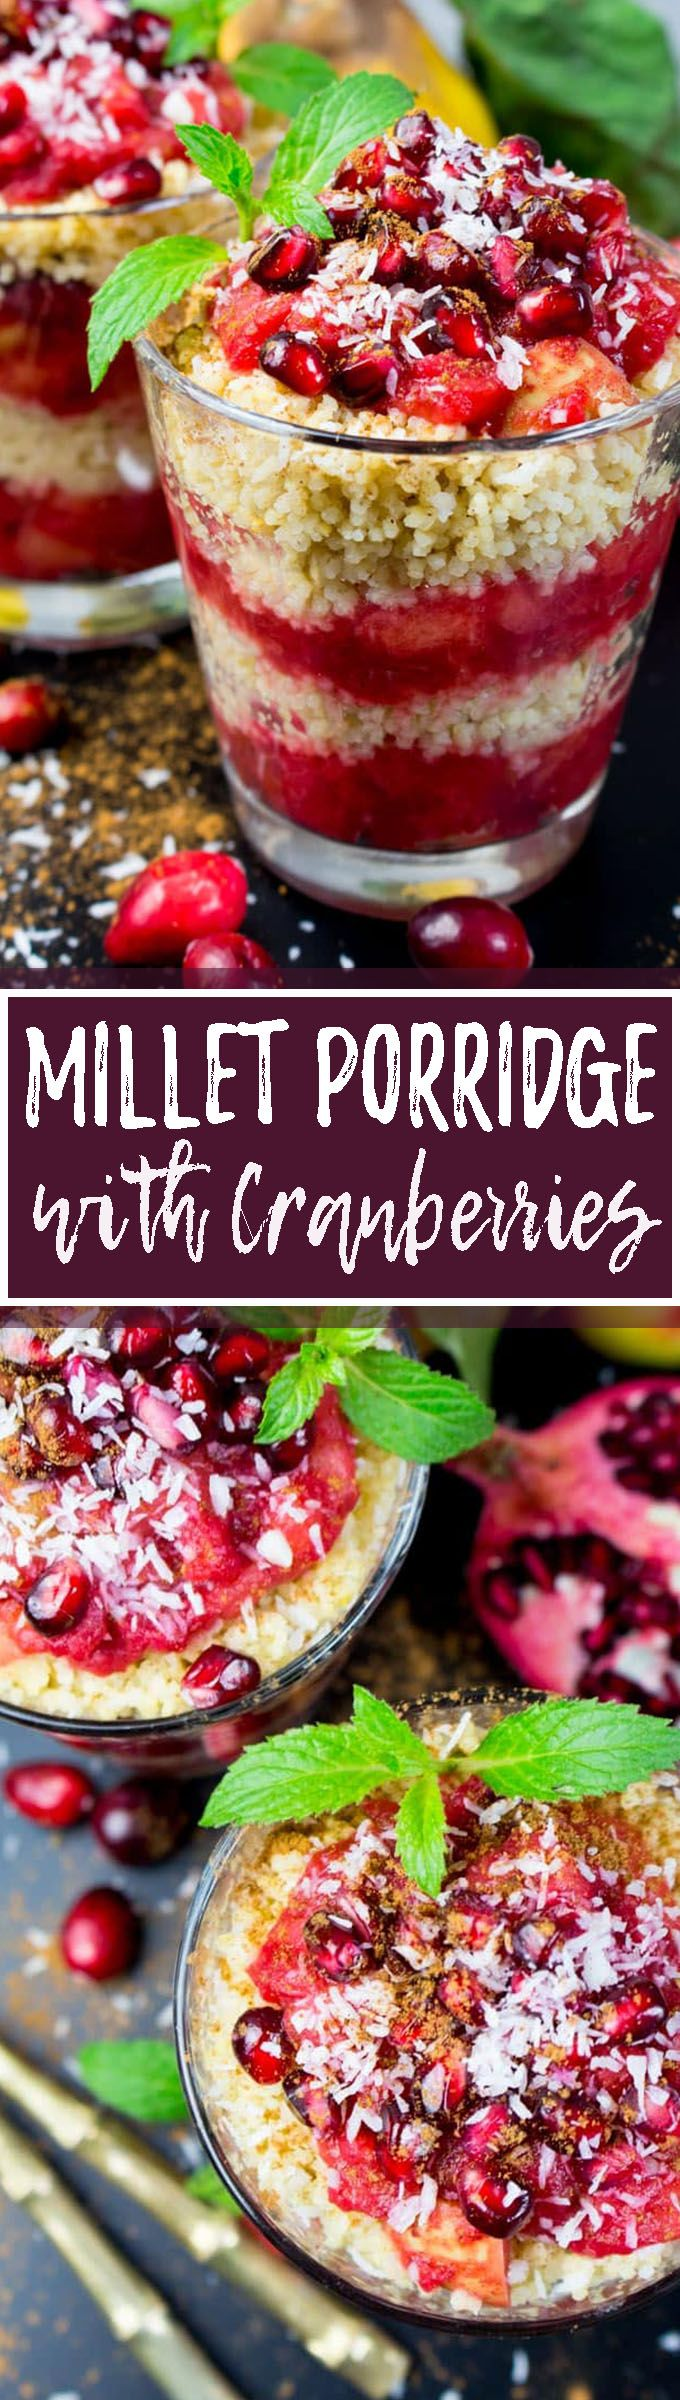 This millet porridge with cranberries, apples, and pomegranate is the perfect vegan breakfast for fall! I love topping it with cinnamon and coconut flakes. Sooo good! It's super healthy, easy to make, and incredibly delicious! Find more vegan recipes at veganheaven.org <3